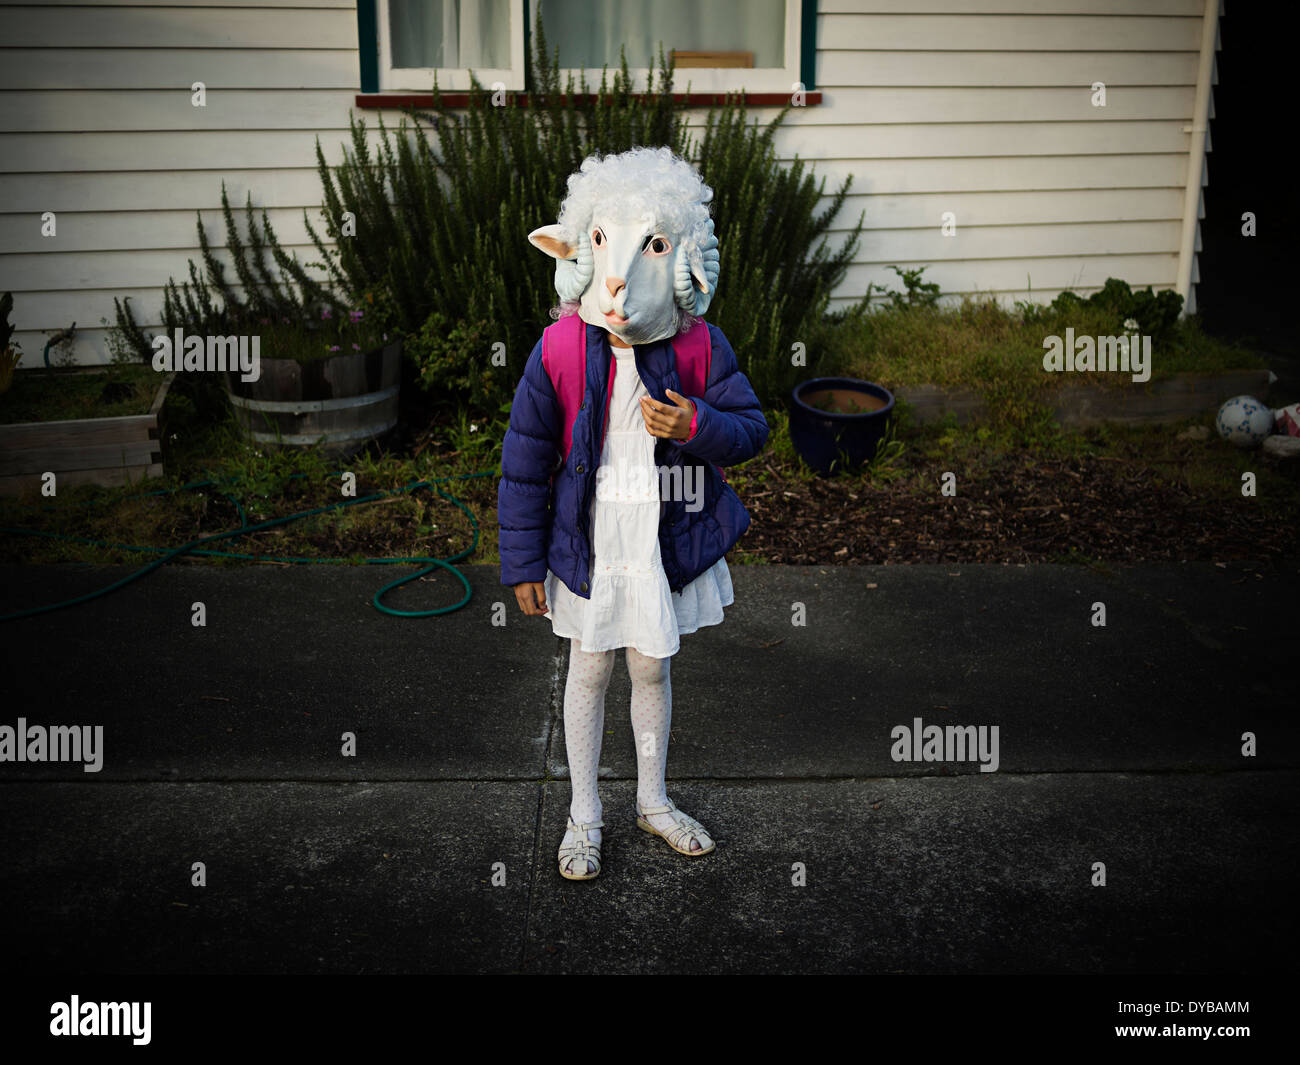 Dress up day at school: girl sets off on walk to school dressed as a sheep Stock Photo